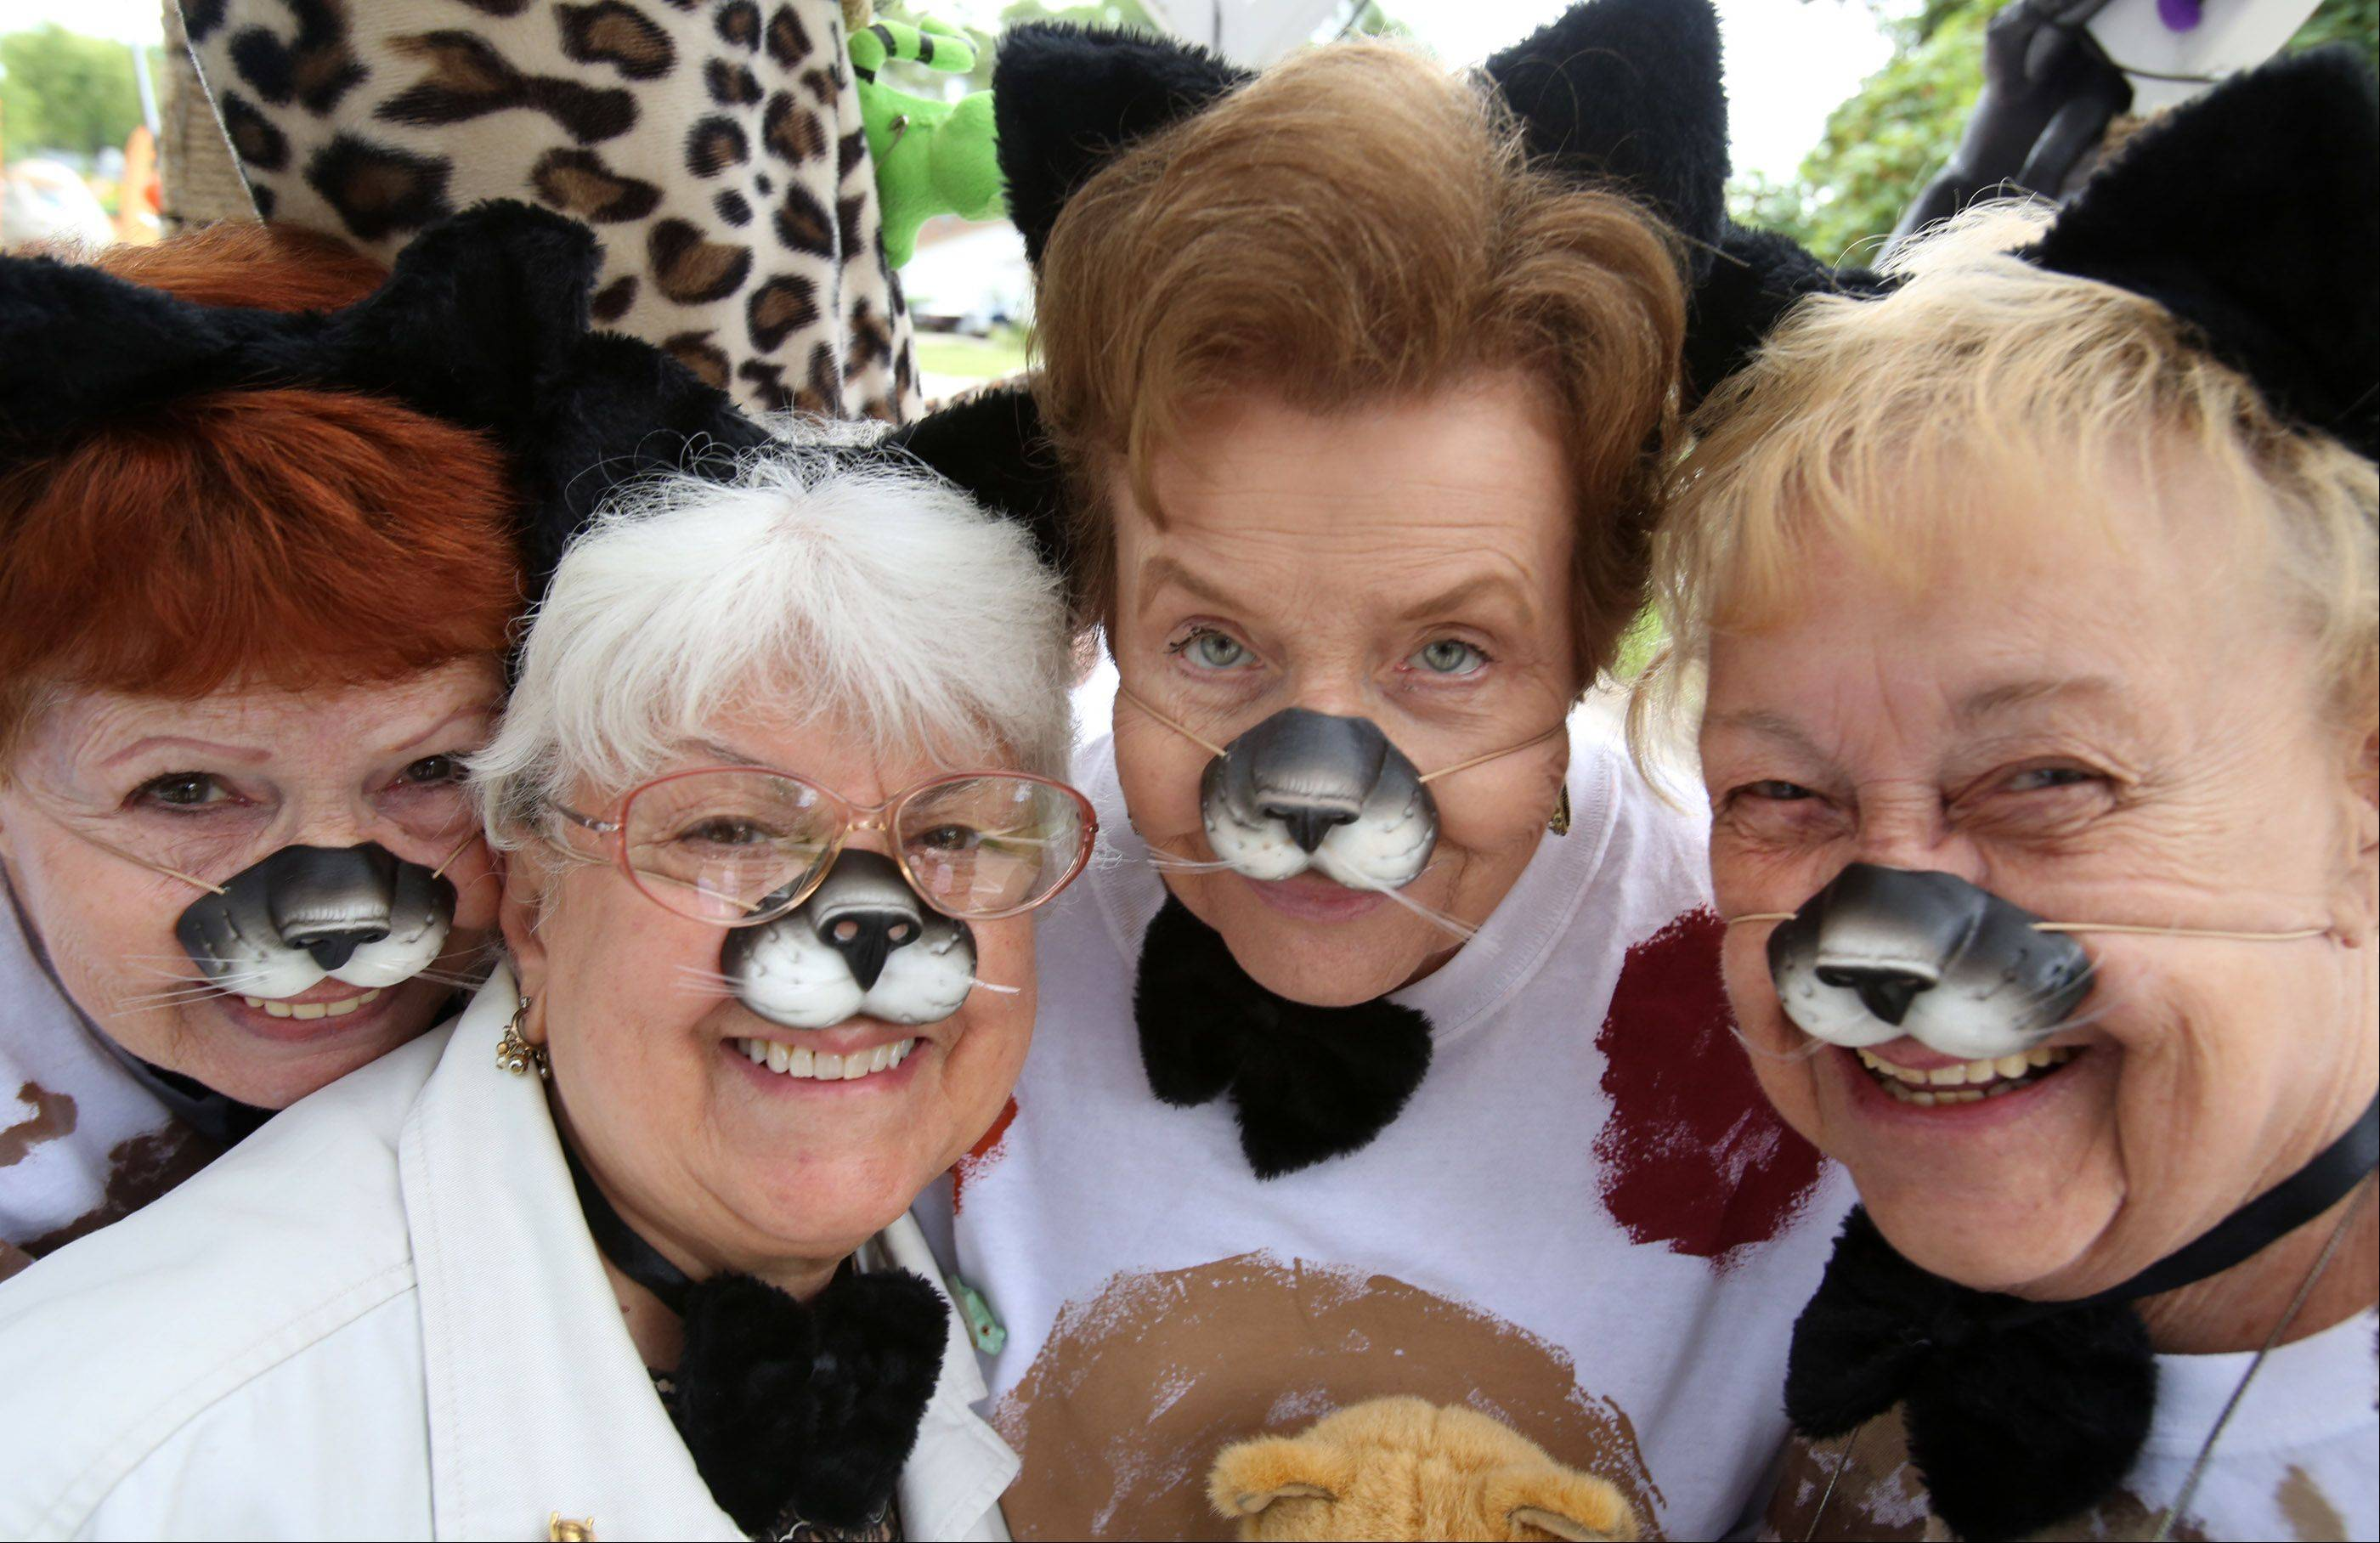 Lee Sedlack, left to right, June Euliano, Kathleen Donaldson, and Charlane Ahlin, on the Hanover Township Senior Services float celebrating Cats and the best of Broadway before the start of the Streamwood Summer Celebration parade on Saturday.